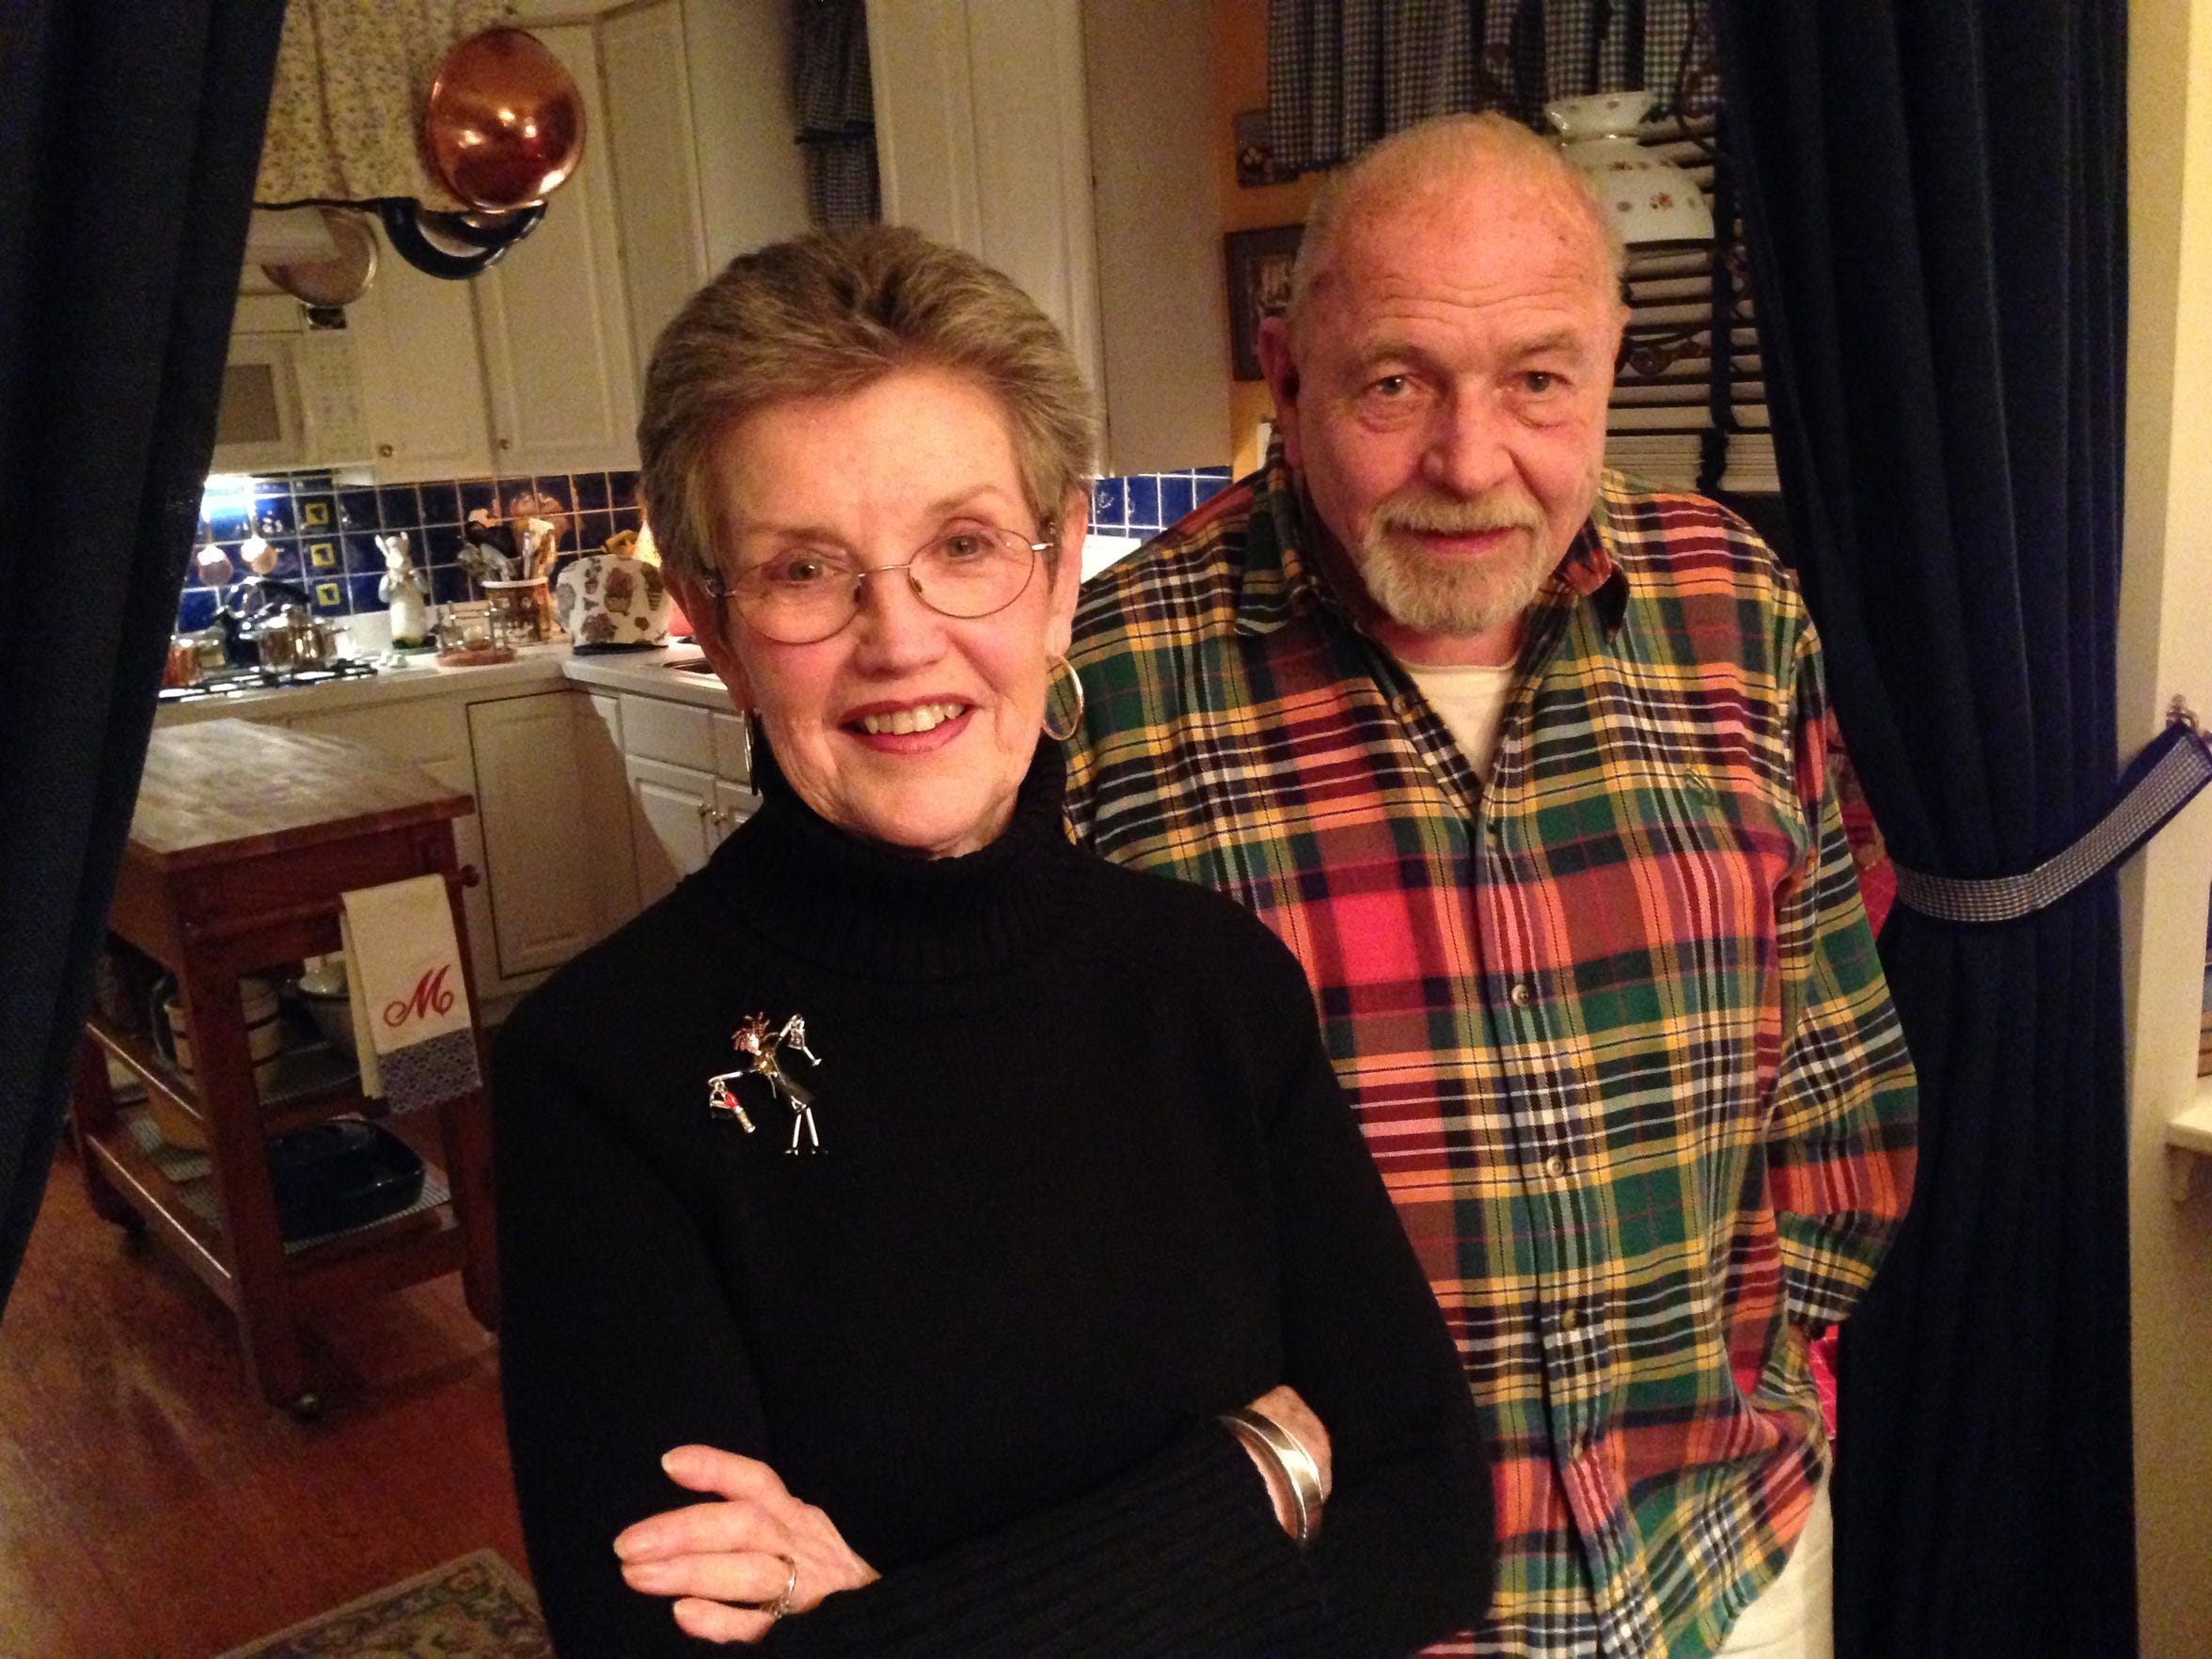 Marilyn and Peter Jessup volunteered to host one of the night's of the Las Posadas observance at their Lakewood home.